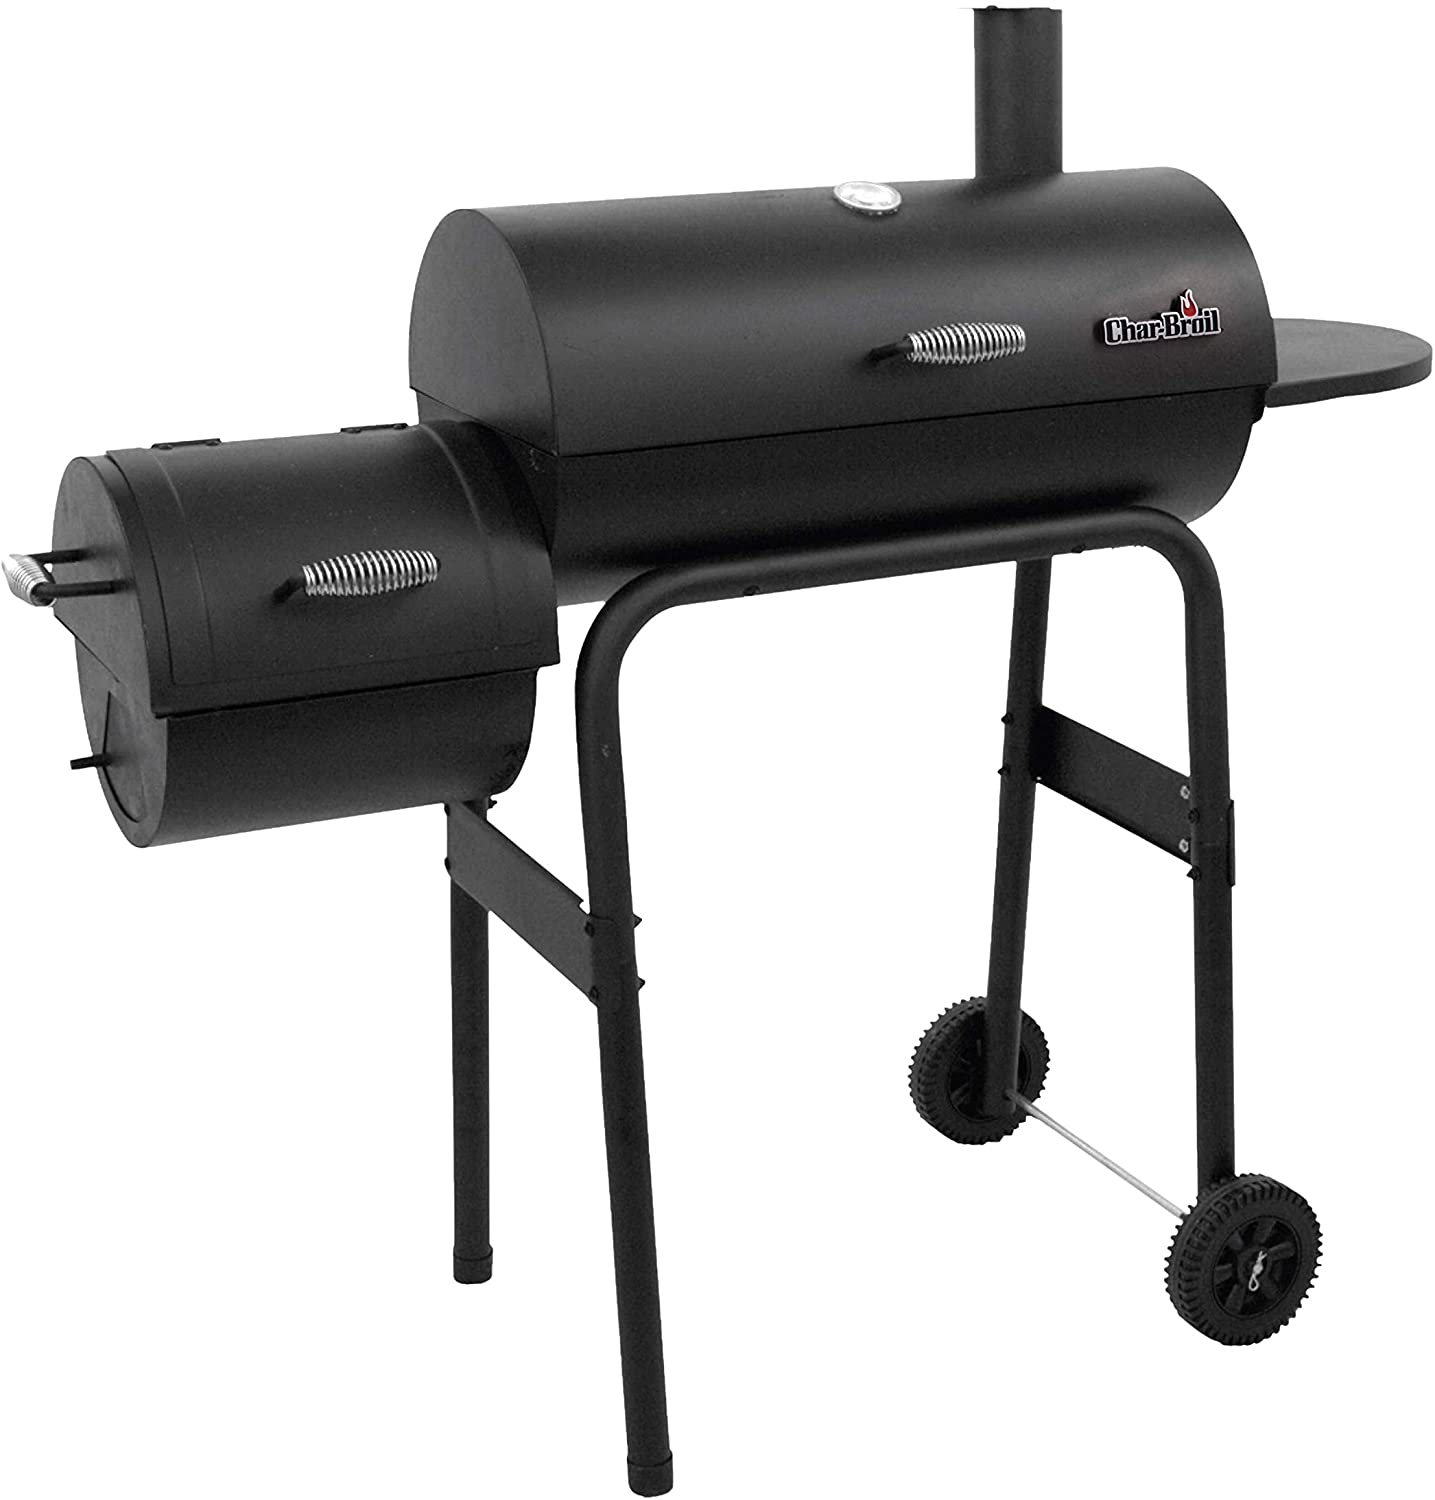 Char-Broil 12201570-A1 American Gourmet Offset Smoker review